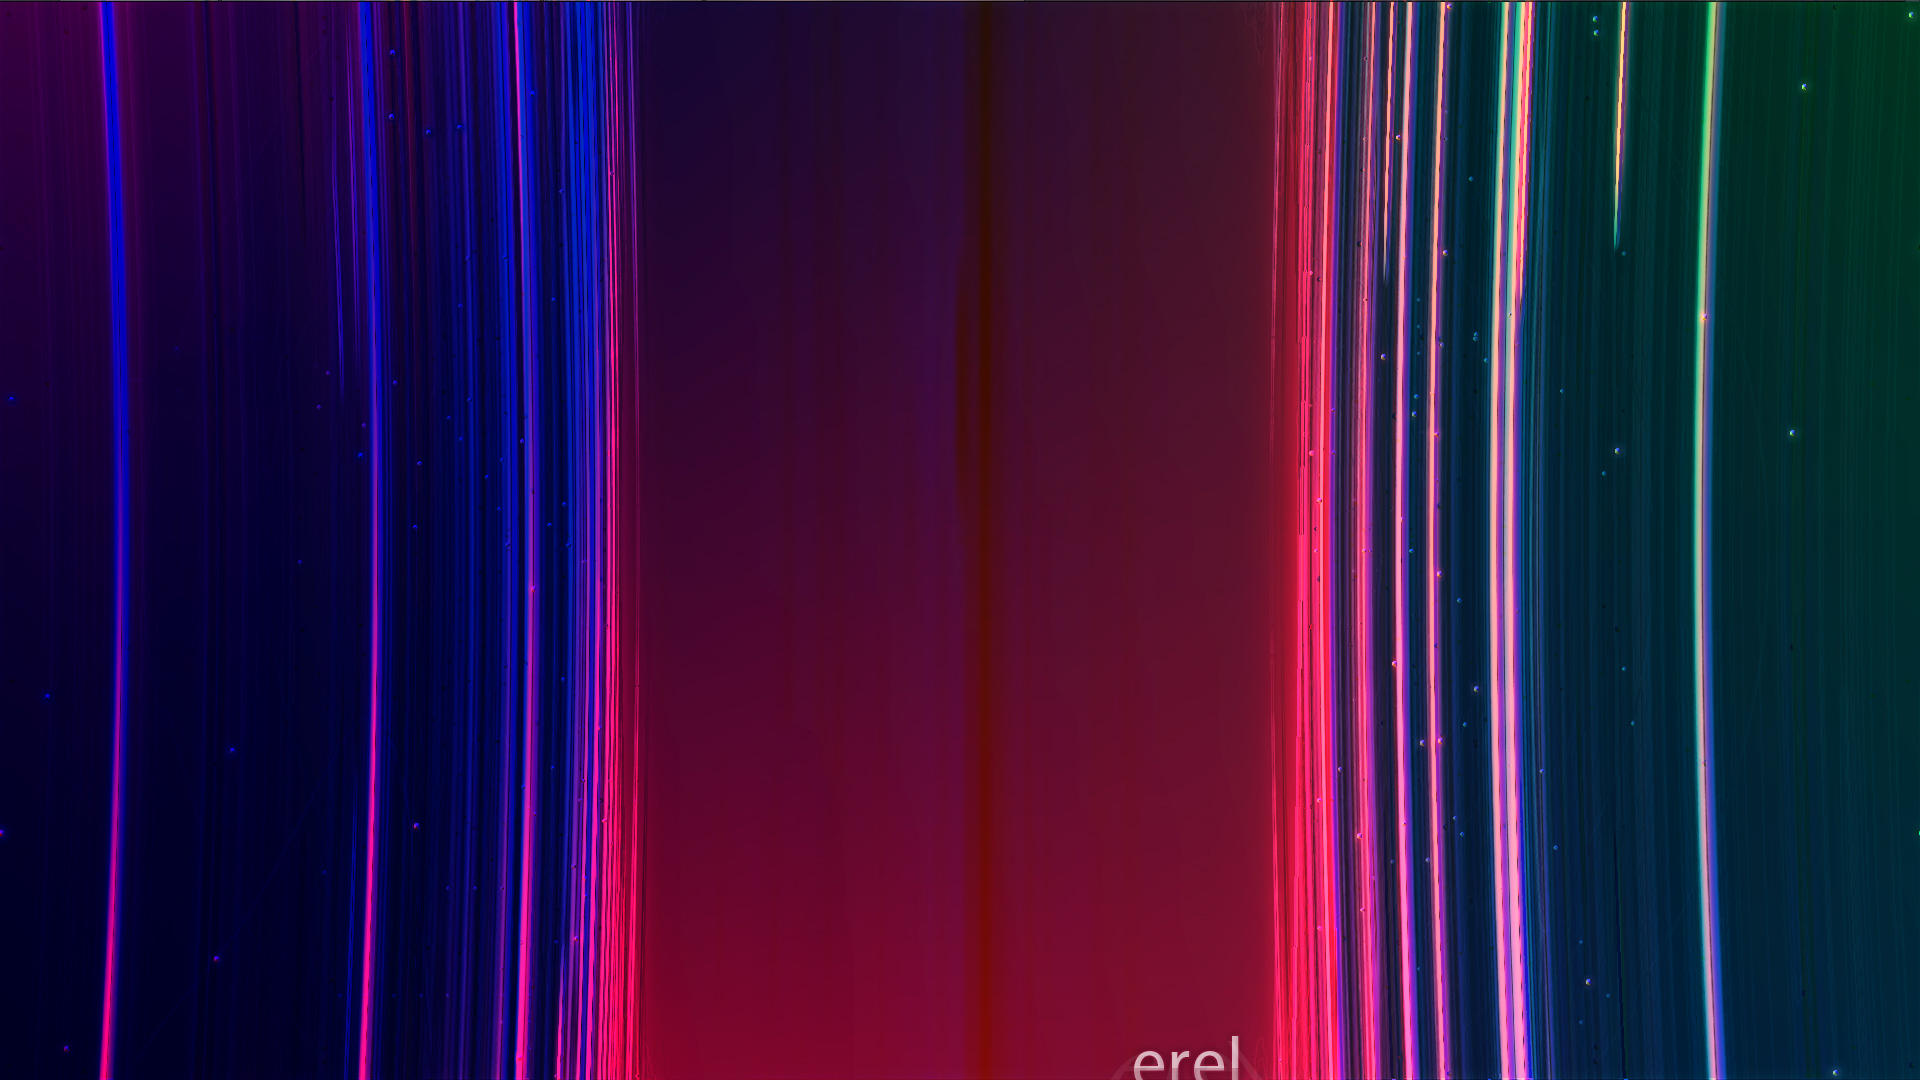 erel wallpaper pack 1 by xerotrinity d37fsk9 Wallpaper pack 9